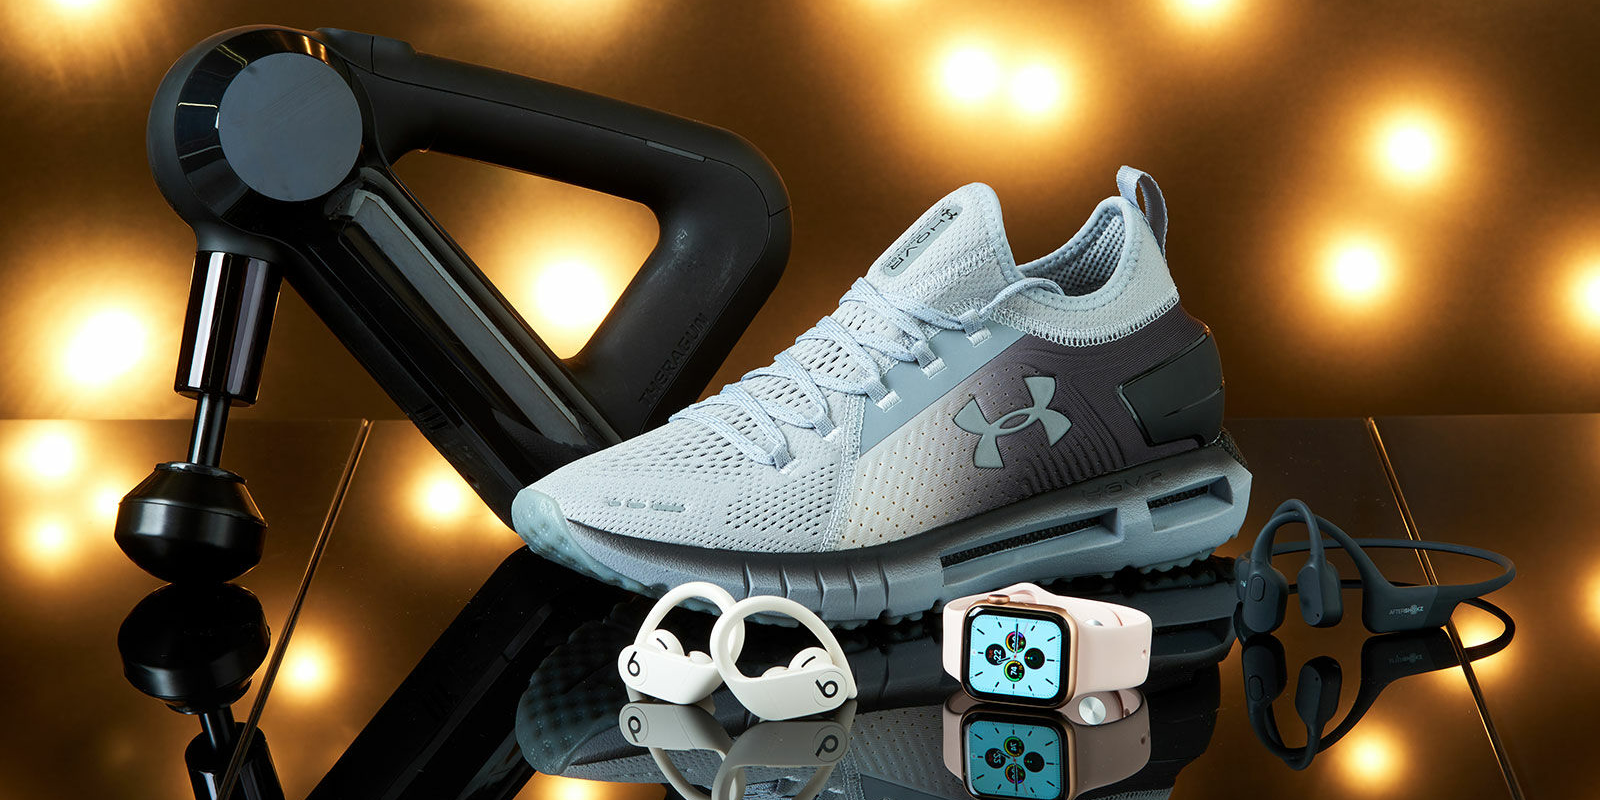 Best gifts for the athlete on your list